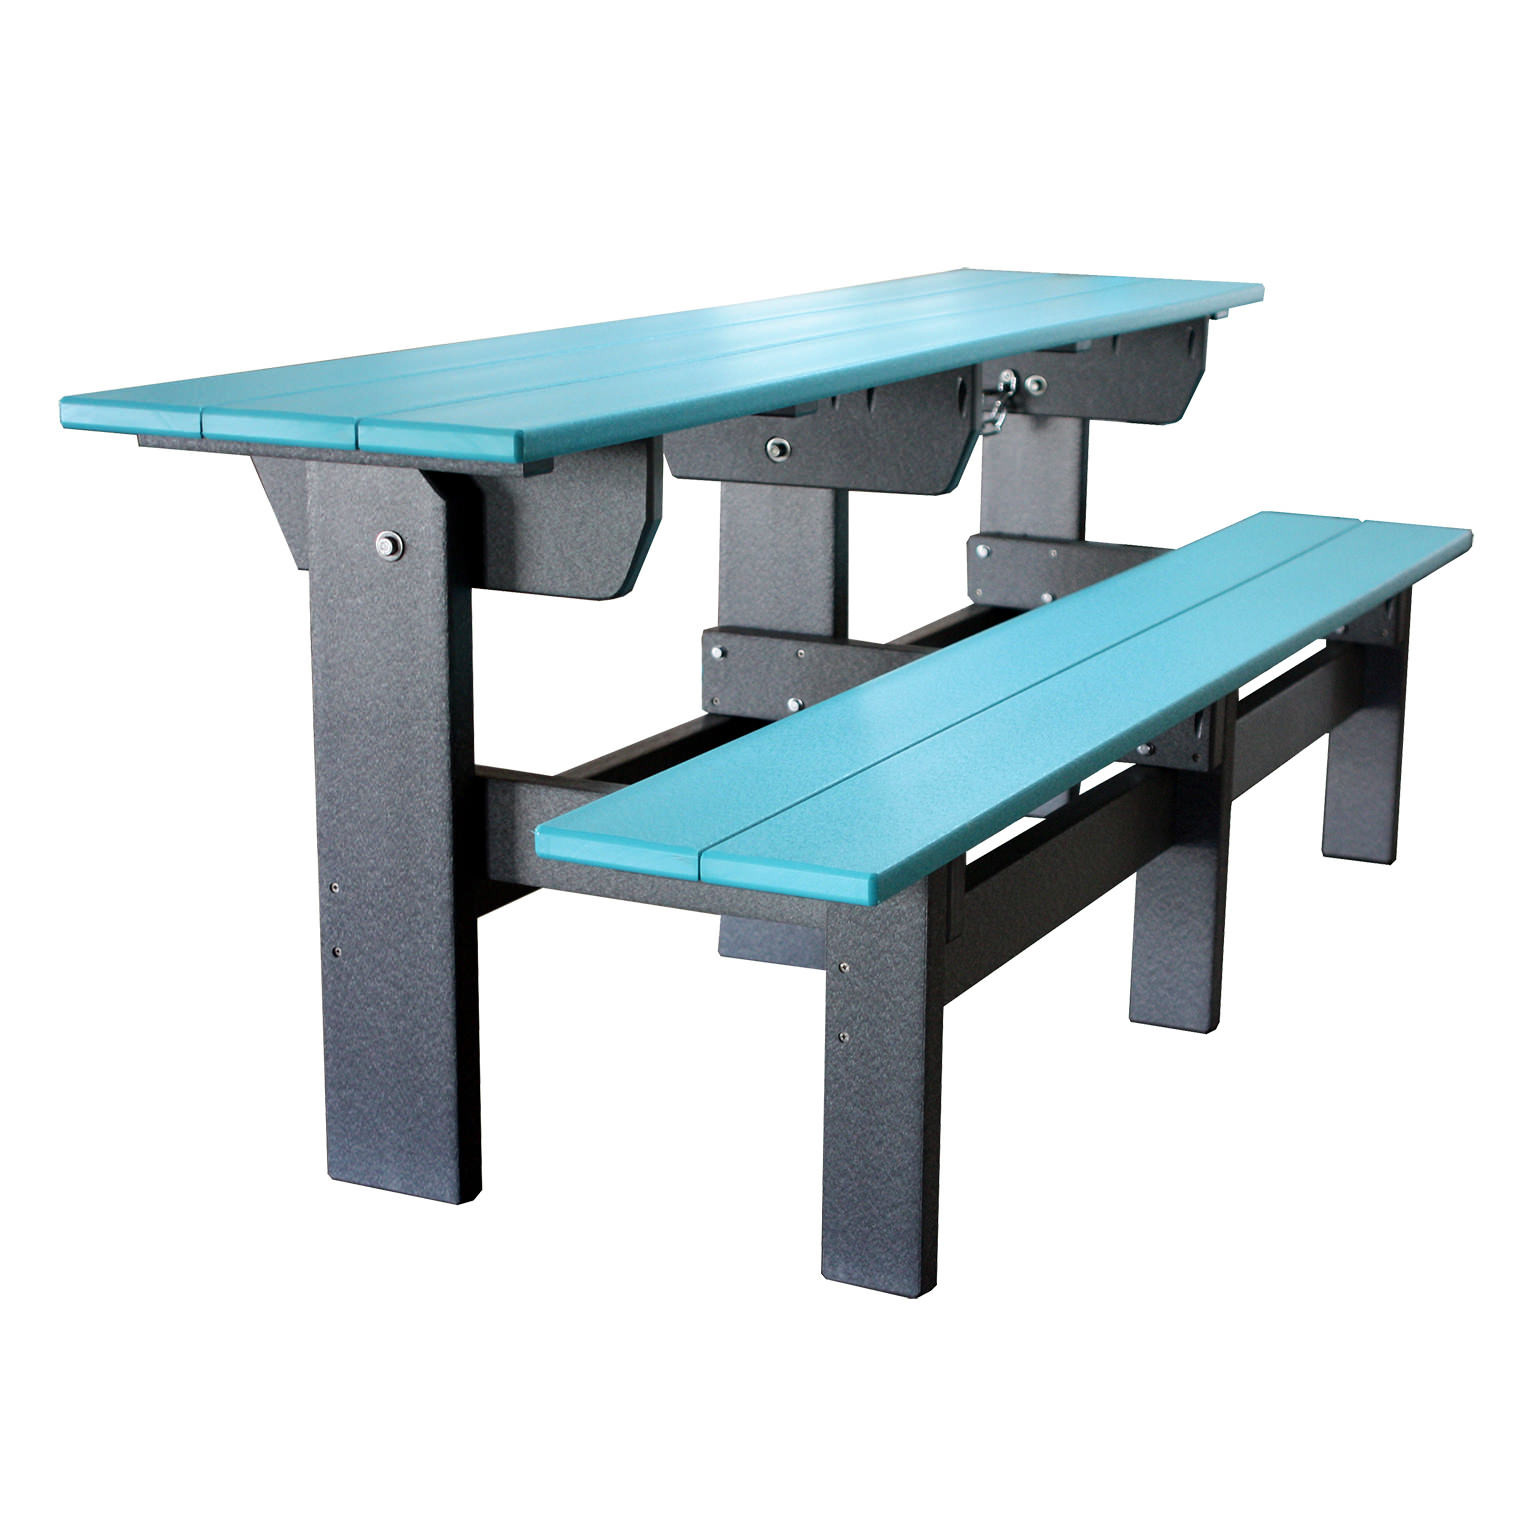 Amish Poly 6' Single Park Bench/Table Set